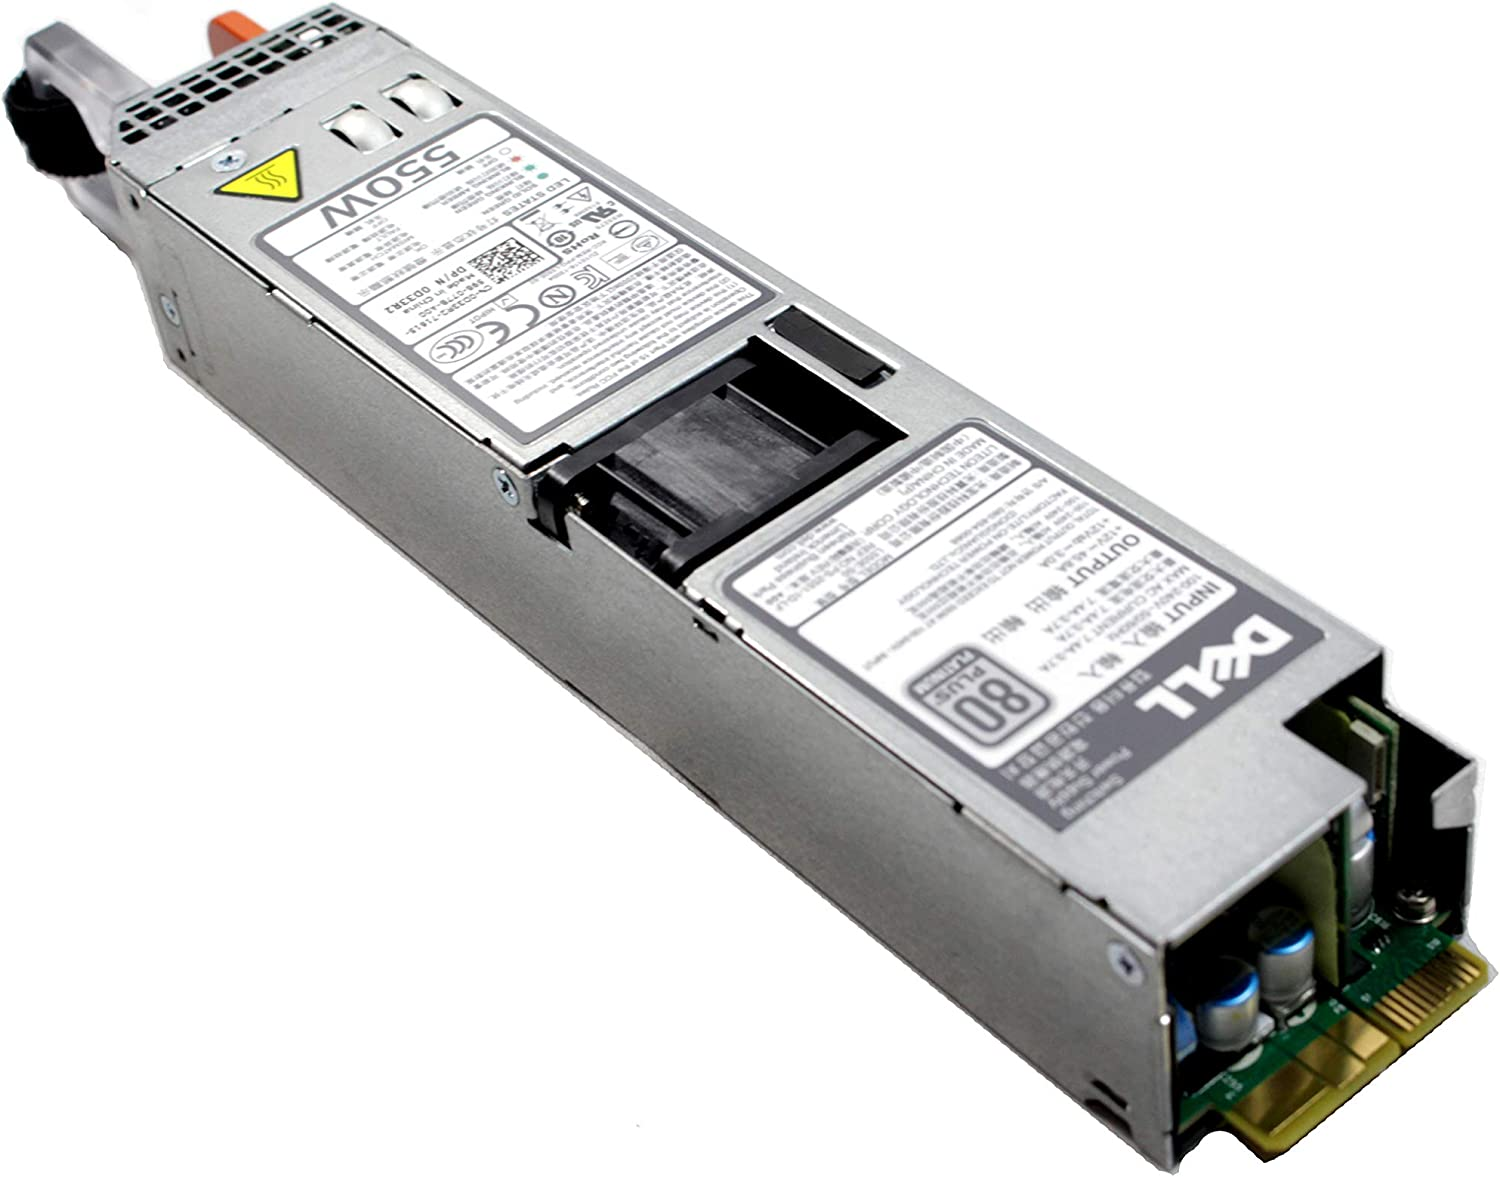 Dell Poweredge R320 R420 550W Power Supply D33R2 0D33R2 L550E-S0 PS-2551-1D-LF